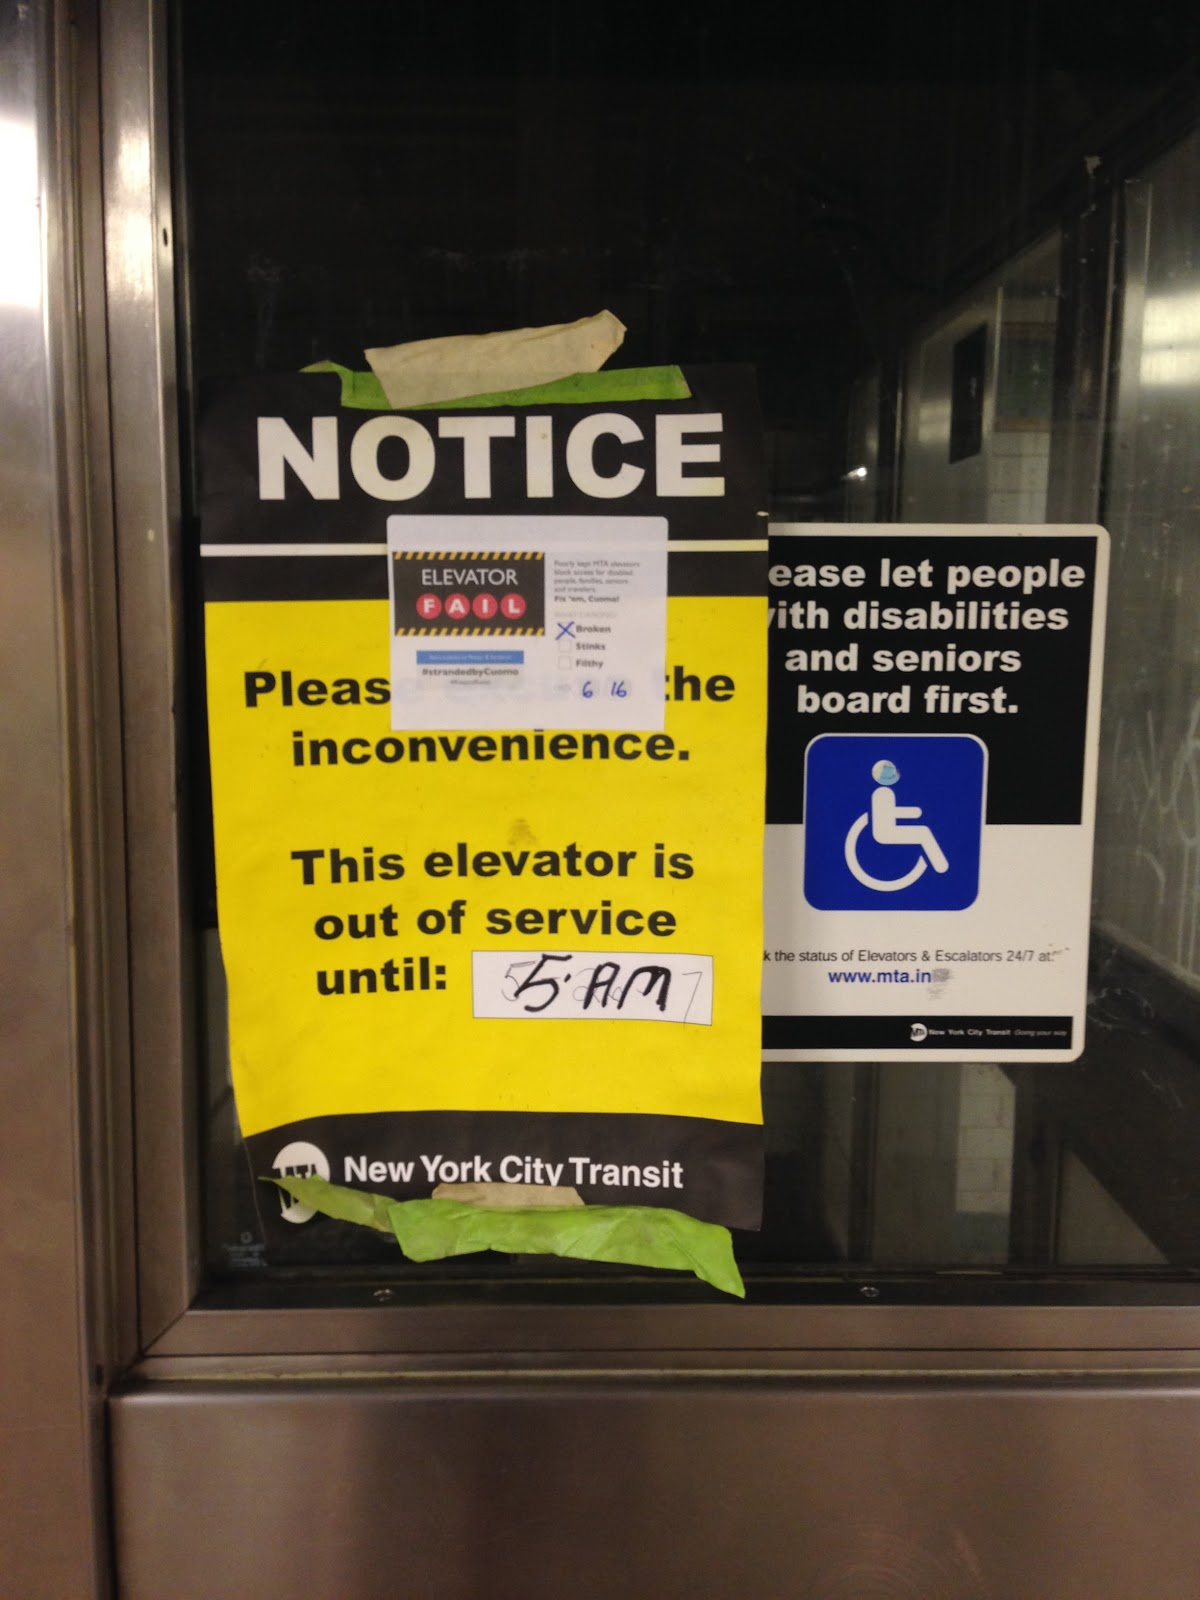 Mta Subway Map Elevators.Elevator Action Group Rise And Resist